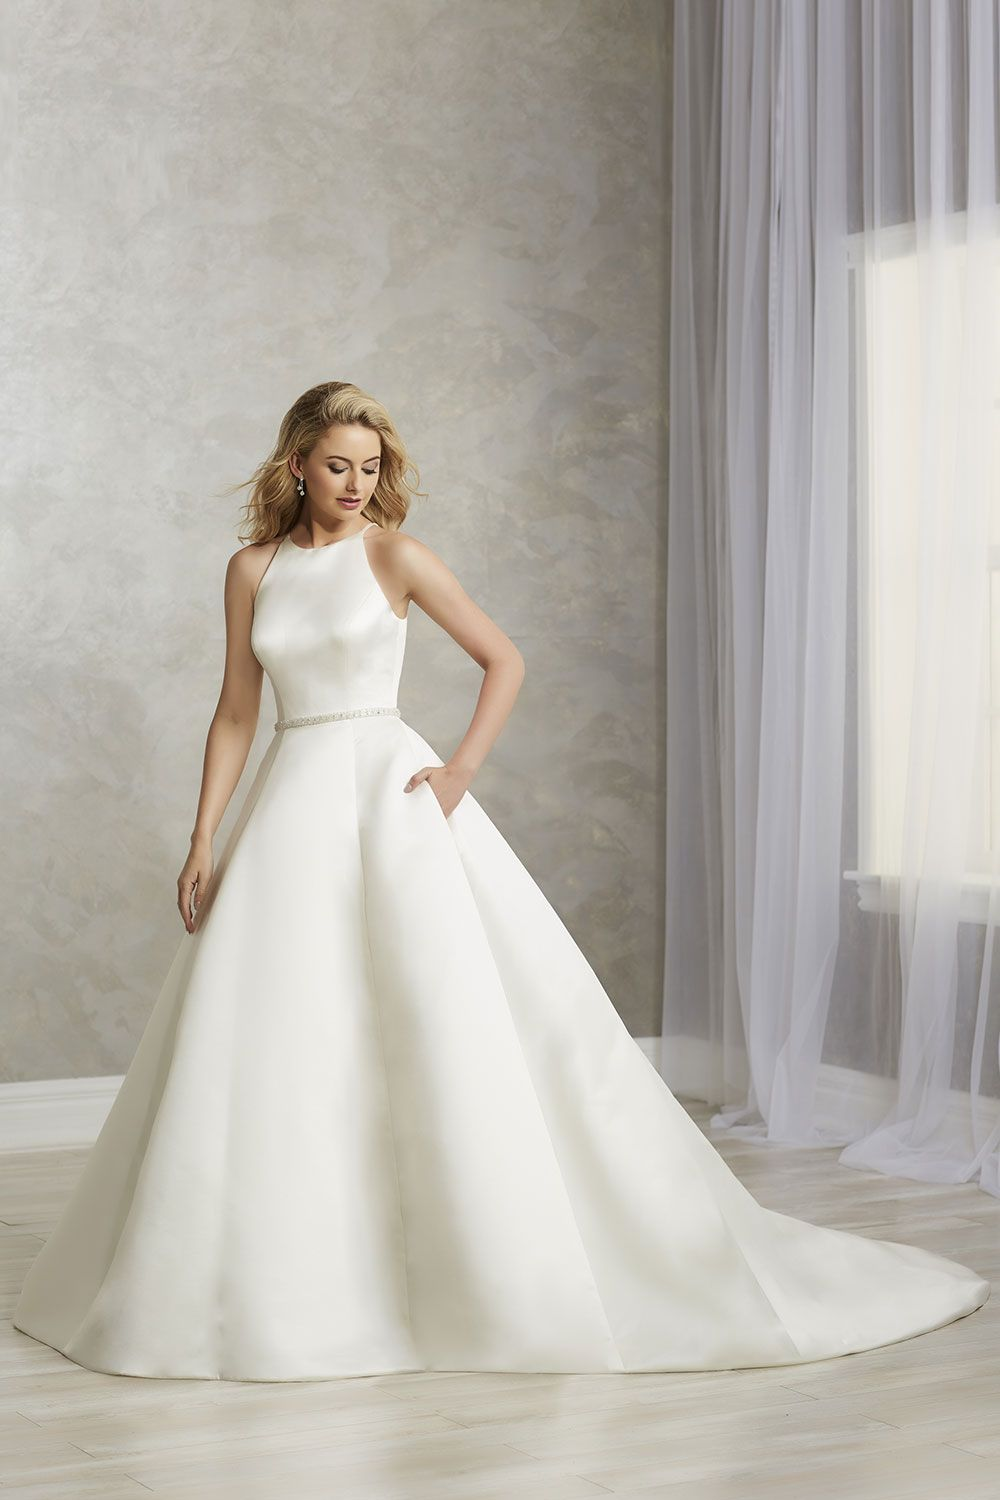 Exclusive style 19161 available lows bridal wedding